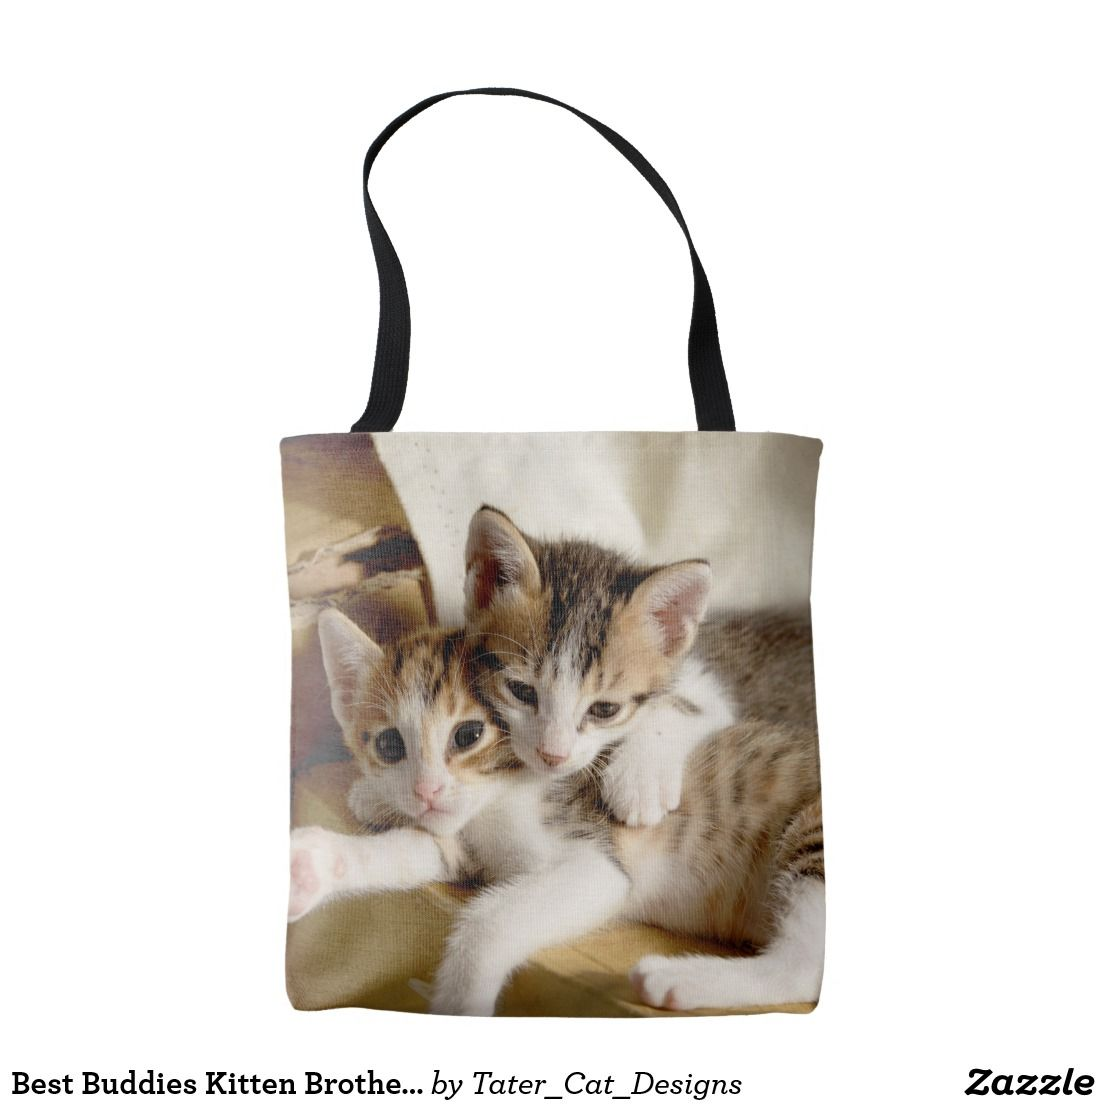 Best Buddies Kitten Brothers Fabric Cats Tote Bag Tote Bag Cat Tote